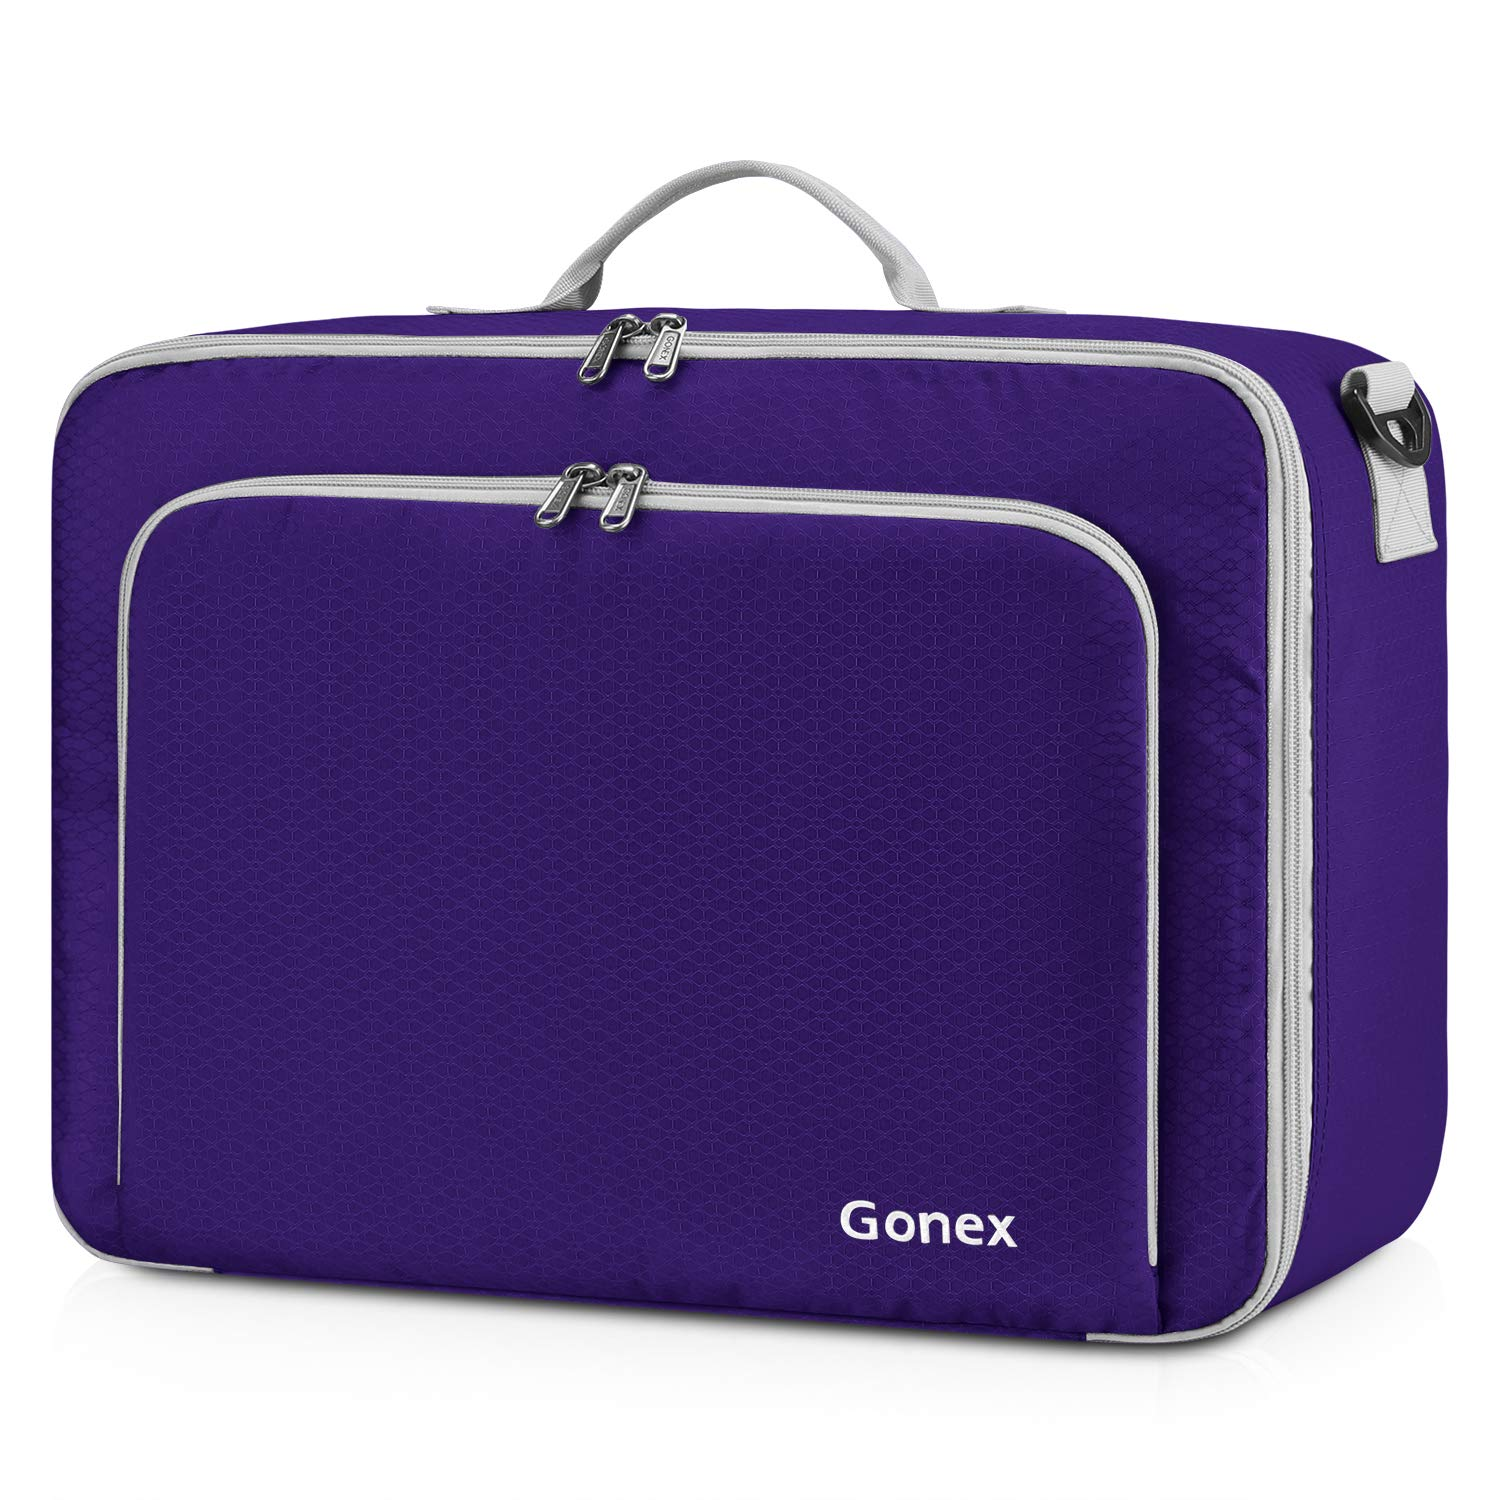 Gonex Travel Duffel Bag, Portable Carry on Luggage Personal Item Bag for Airlines, Water& Tear-Resistant 20L Purple